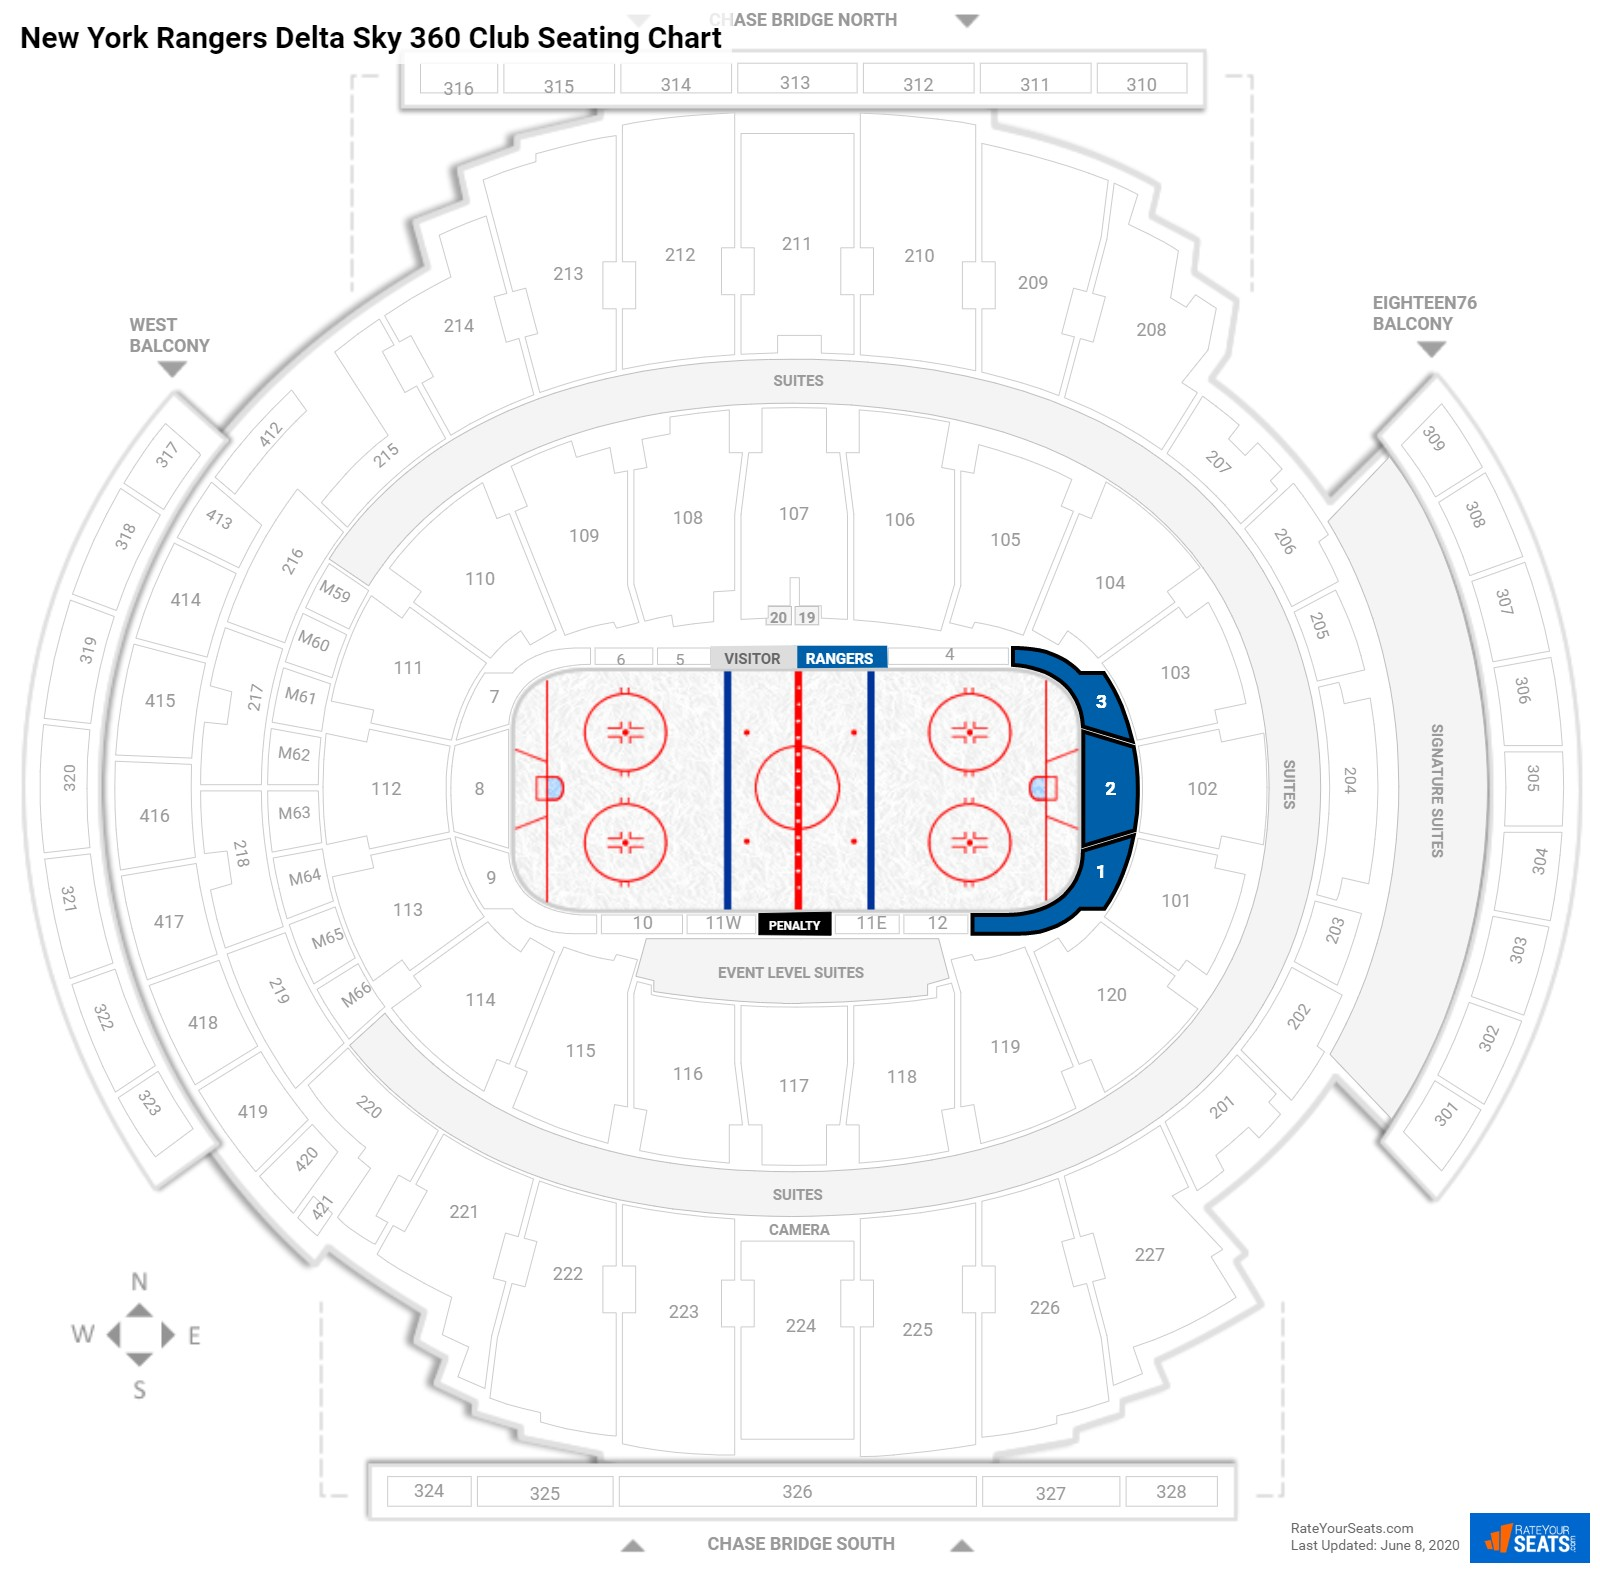 New York Rangers Club Seating At Madison Square Garden   RateYourSeats.com